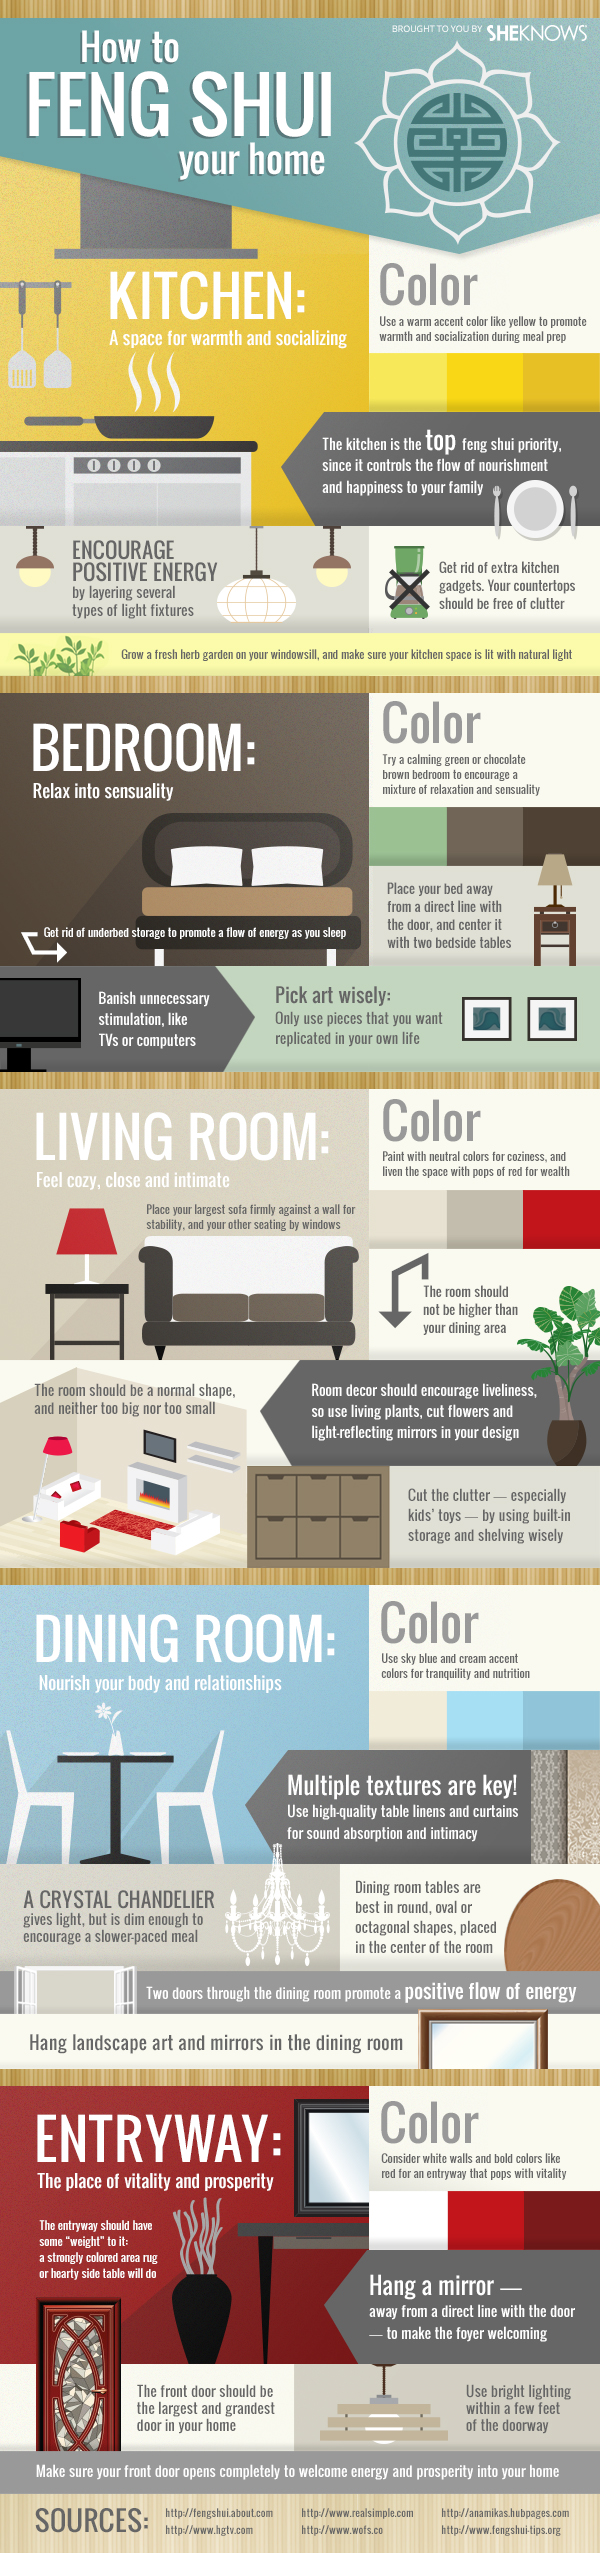 FengShui-Infographic